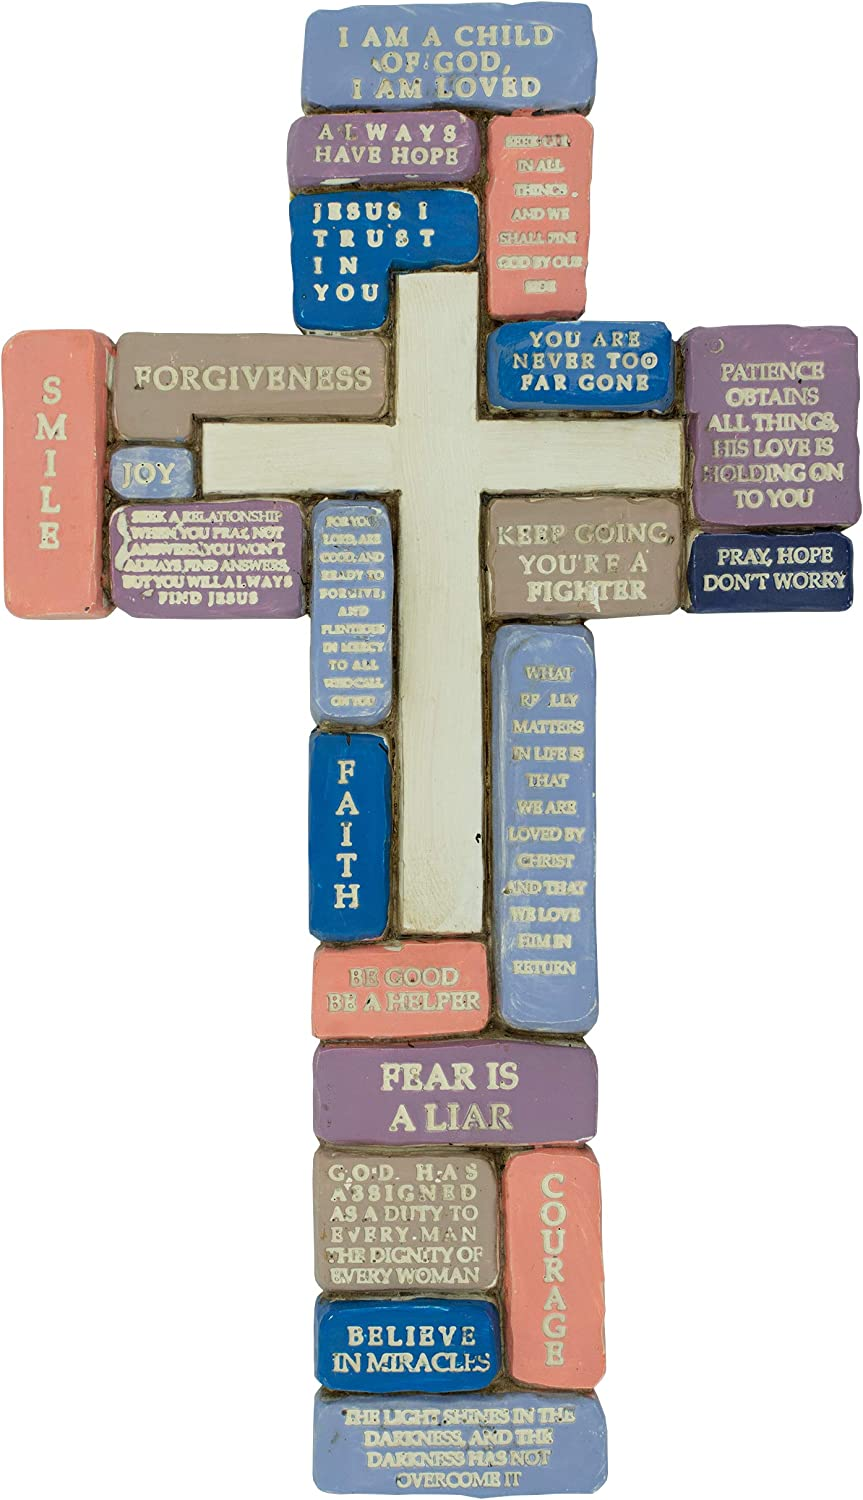 Inspirational Resin Wall Cross | Encouraging Words for Teenage Girls | Great Gift for 8th Grade Graduation, Confirmation, New School Year | Christian Home Decor